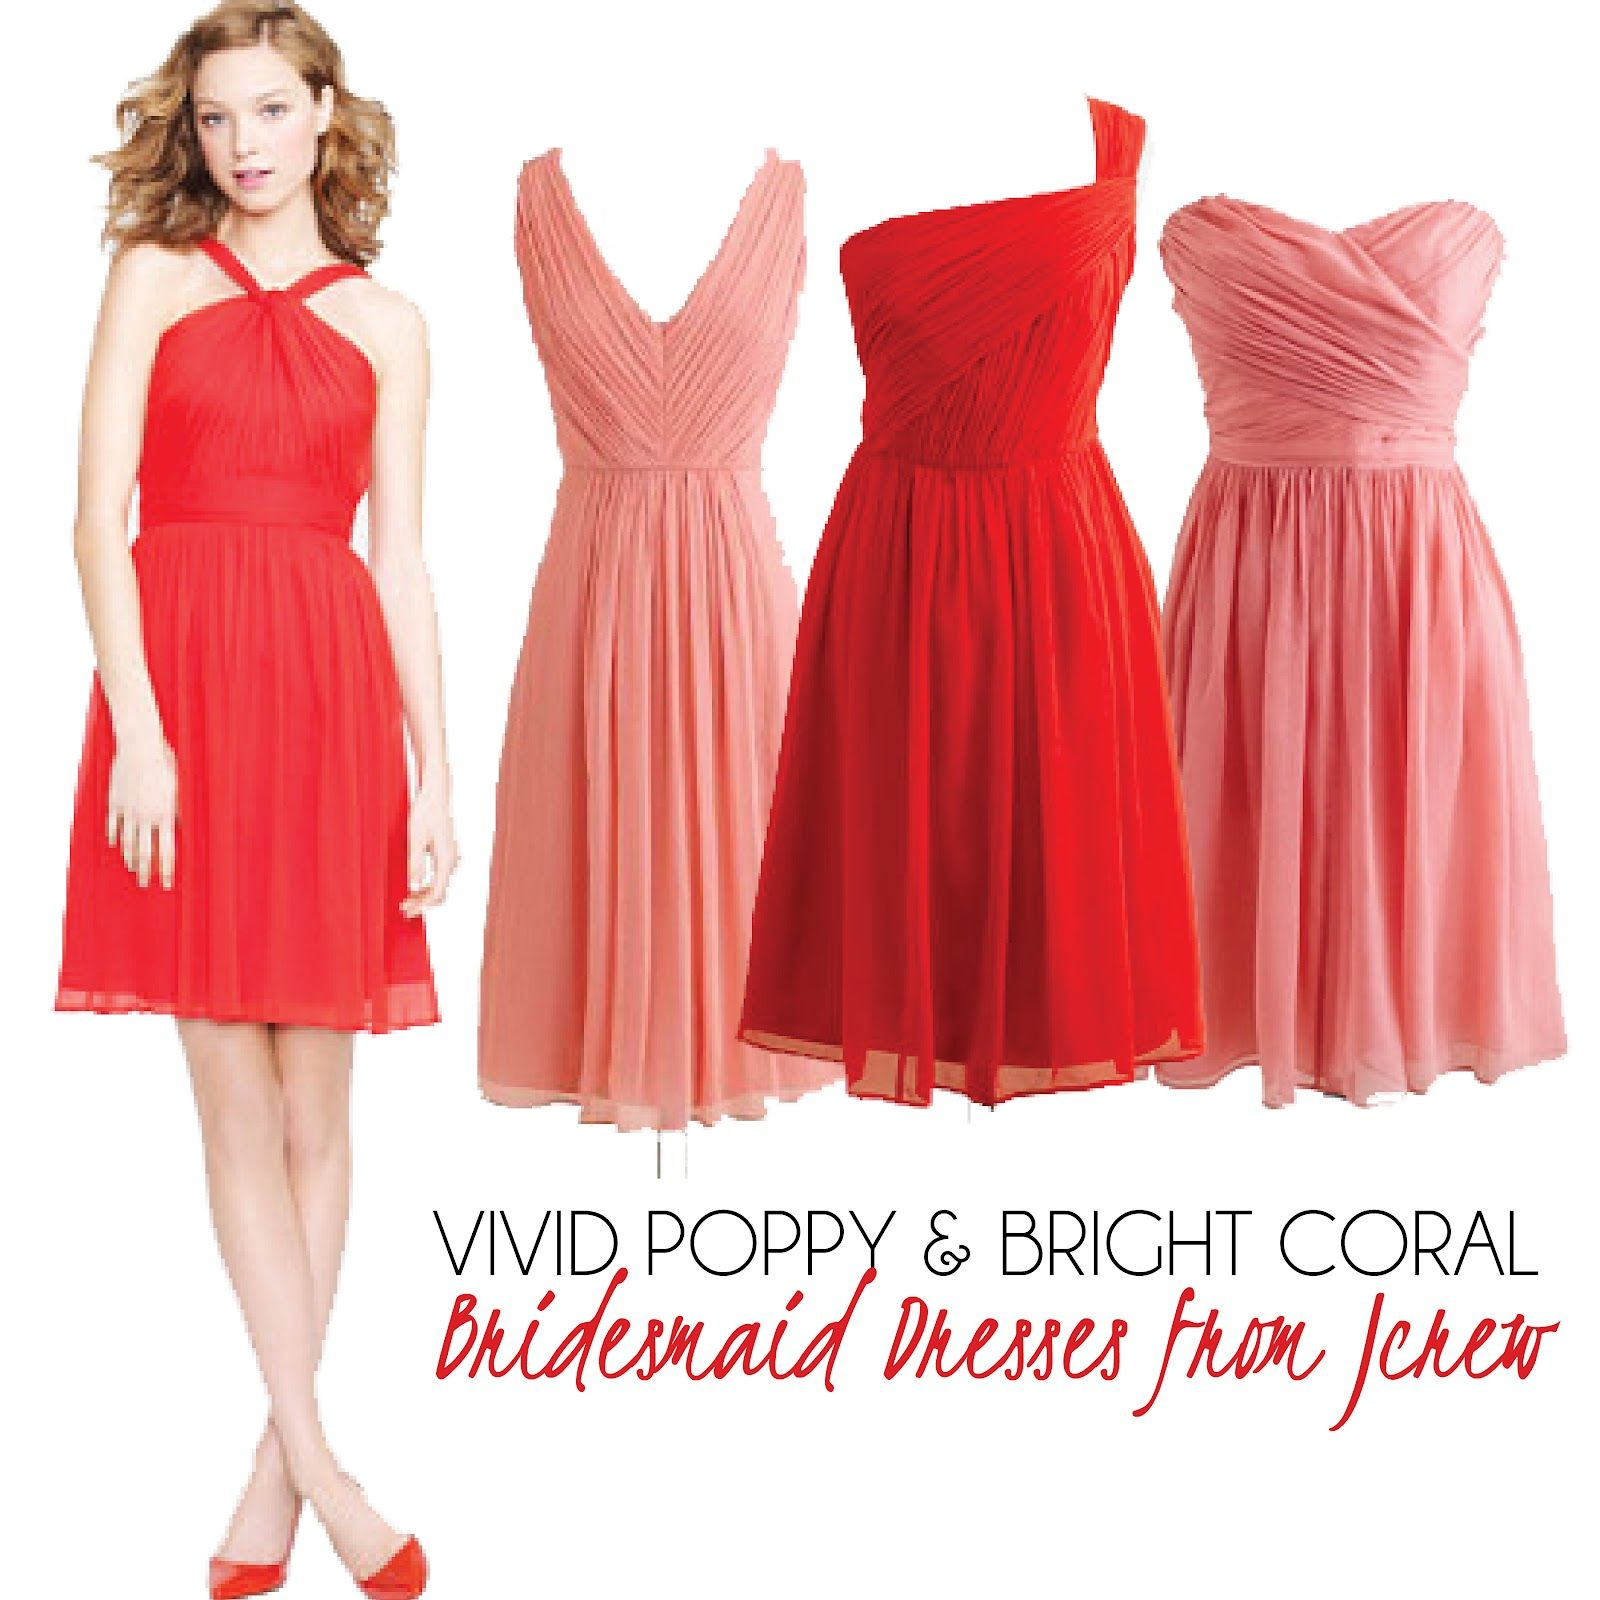 vivid poppy, bright coral | Bridesmaids | Pinterest | Colors, The ...